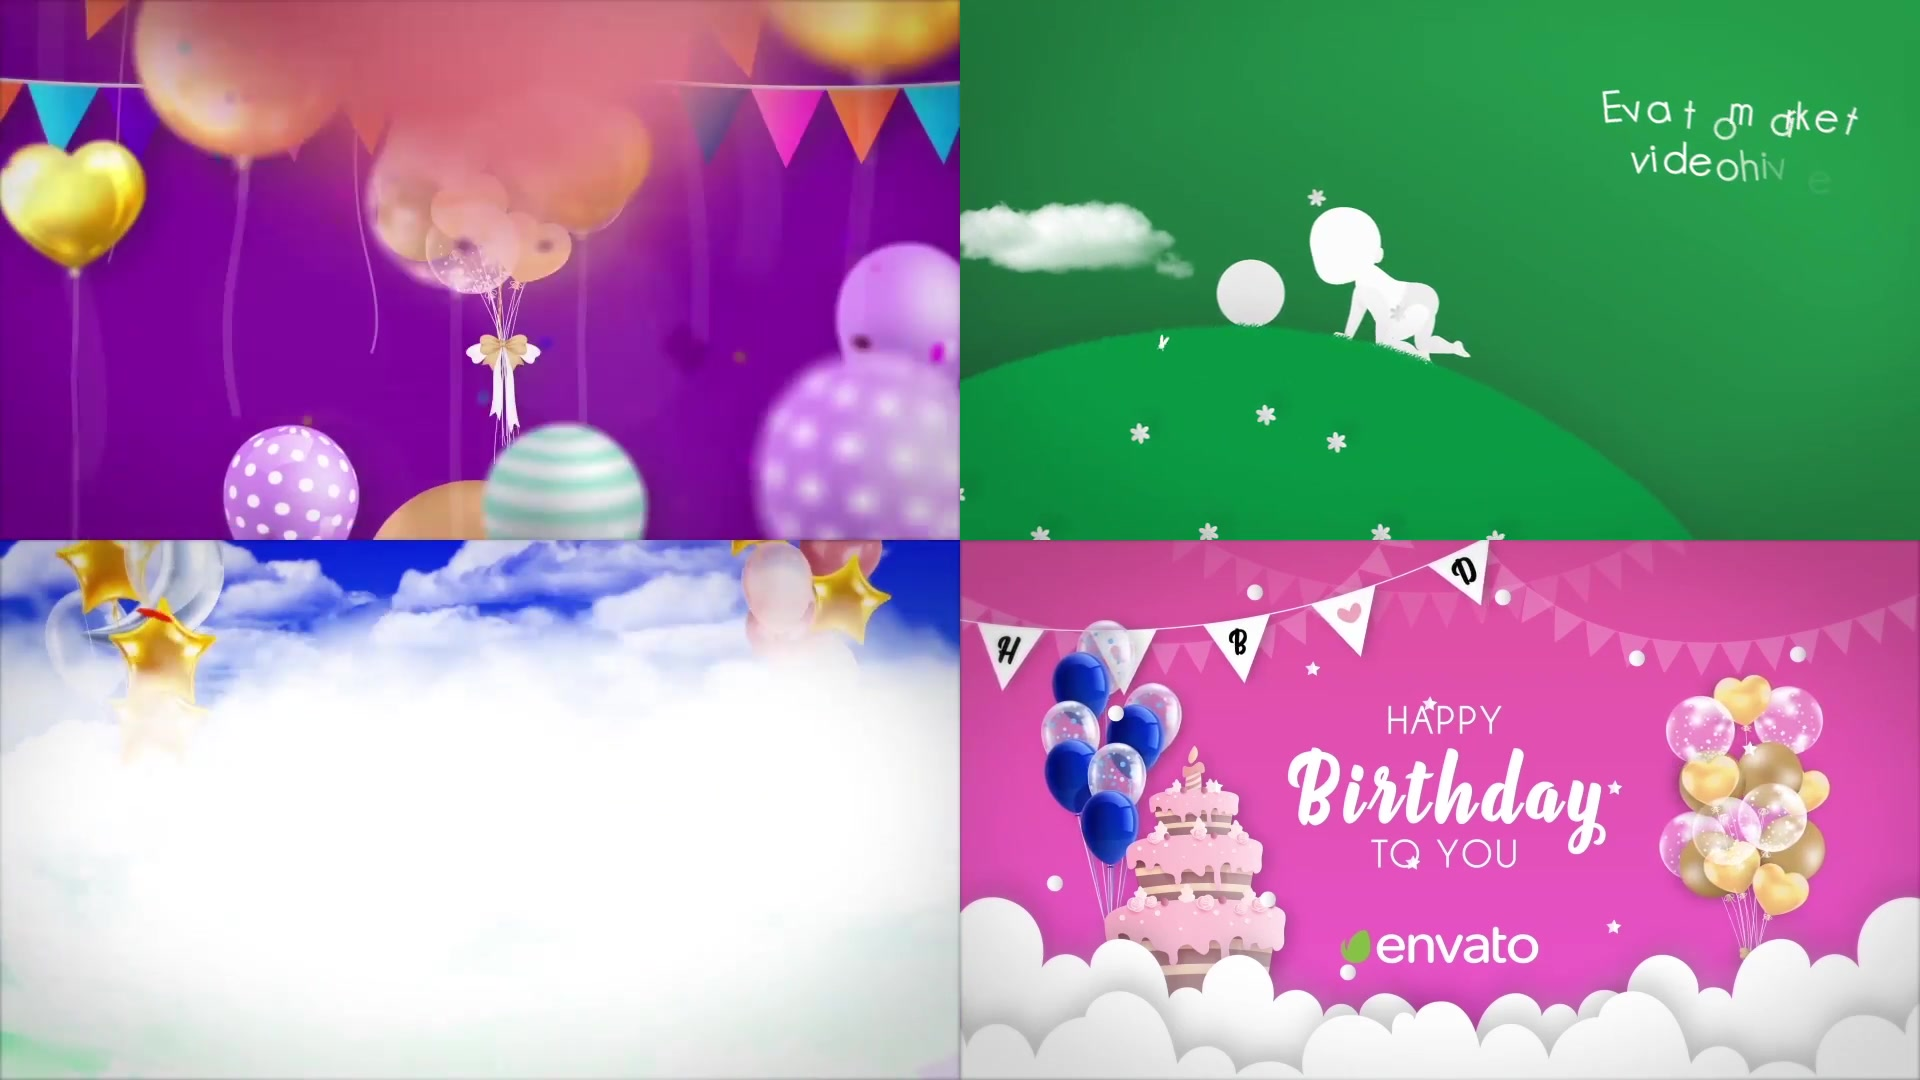 Happy Birthday Opener Videohive 31642133 After Effects Image 12